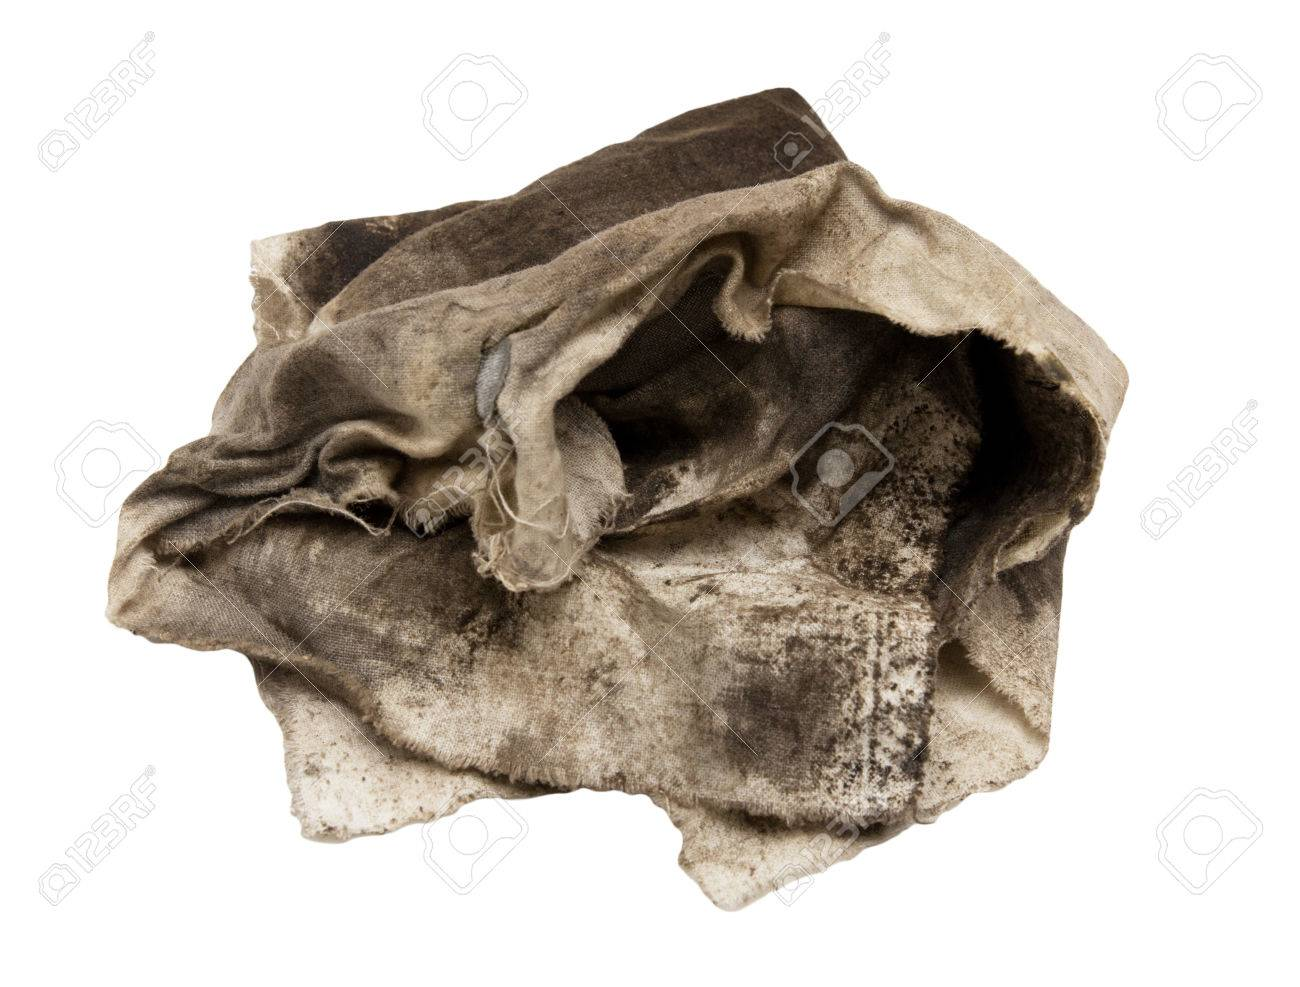 99718d21ca20a Dirty Rag On A White Background Stock Photo, Picture And Royalty ...